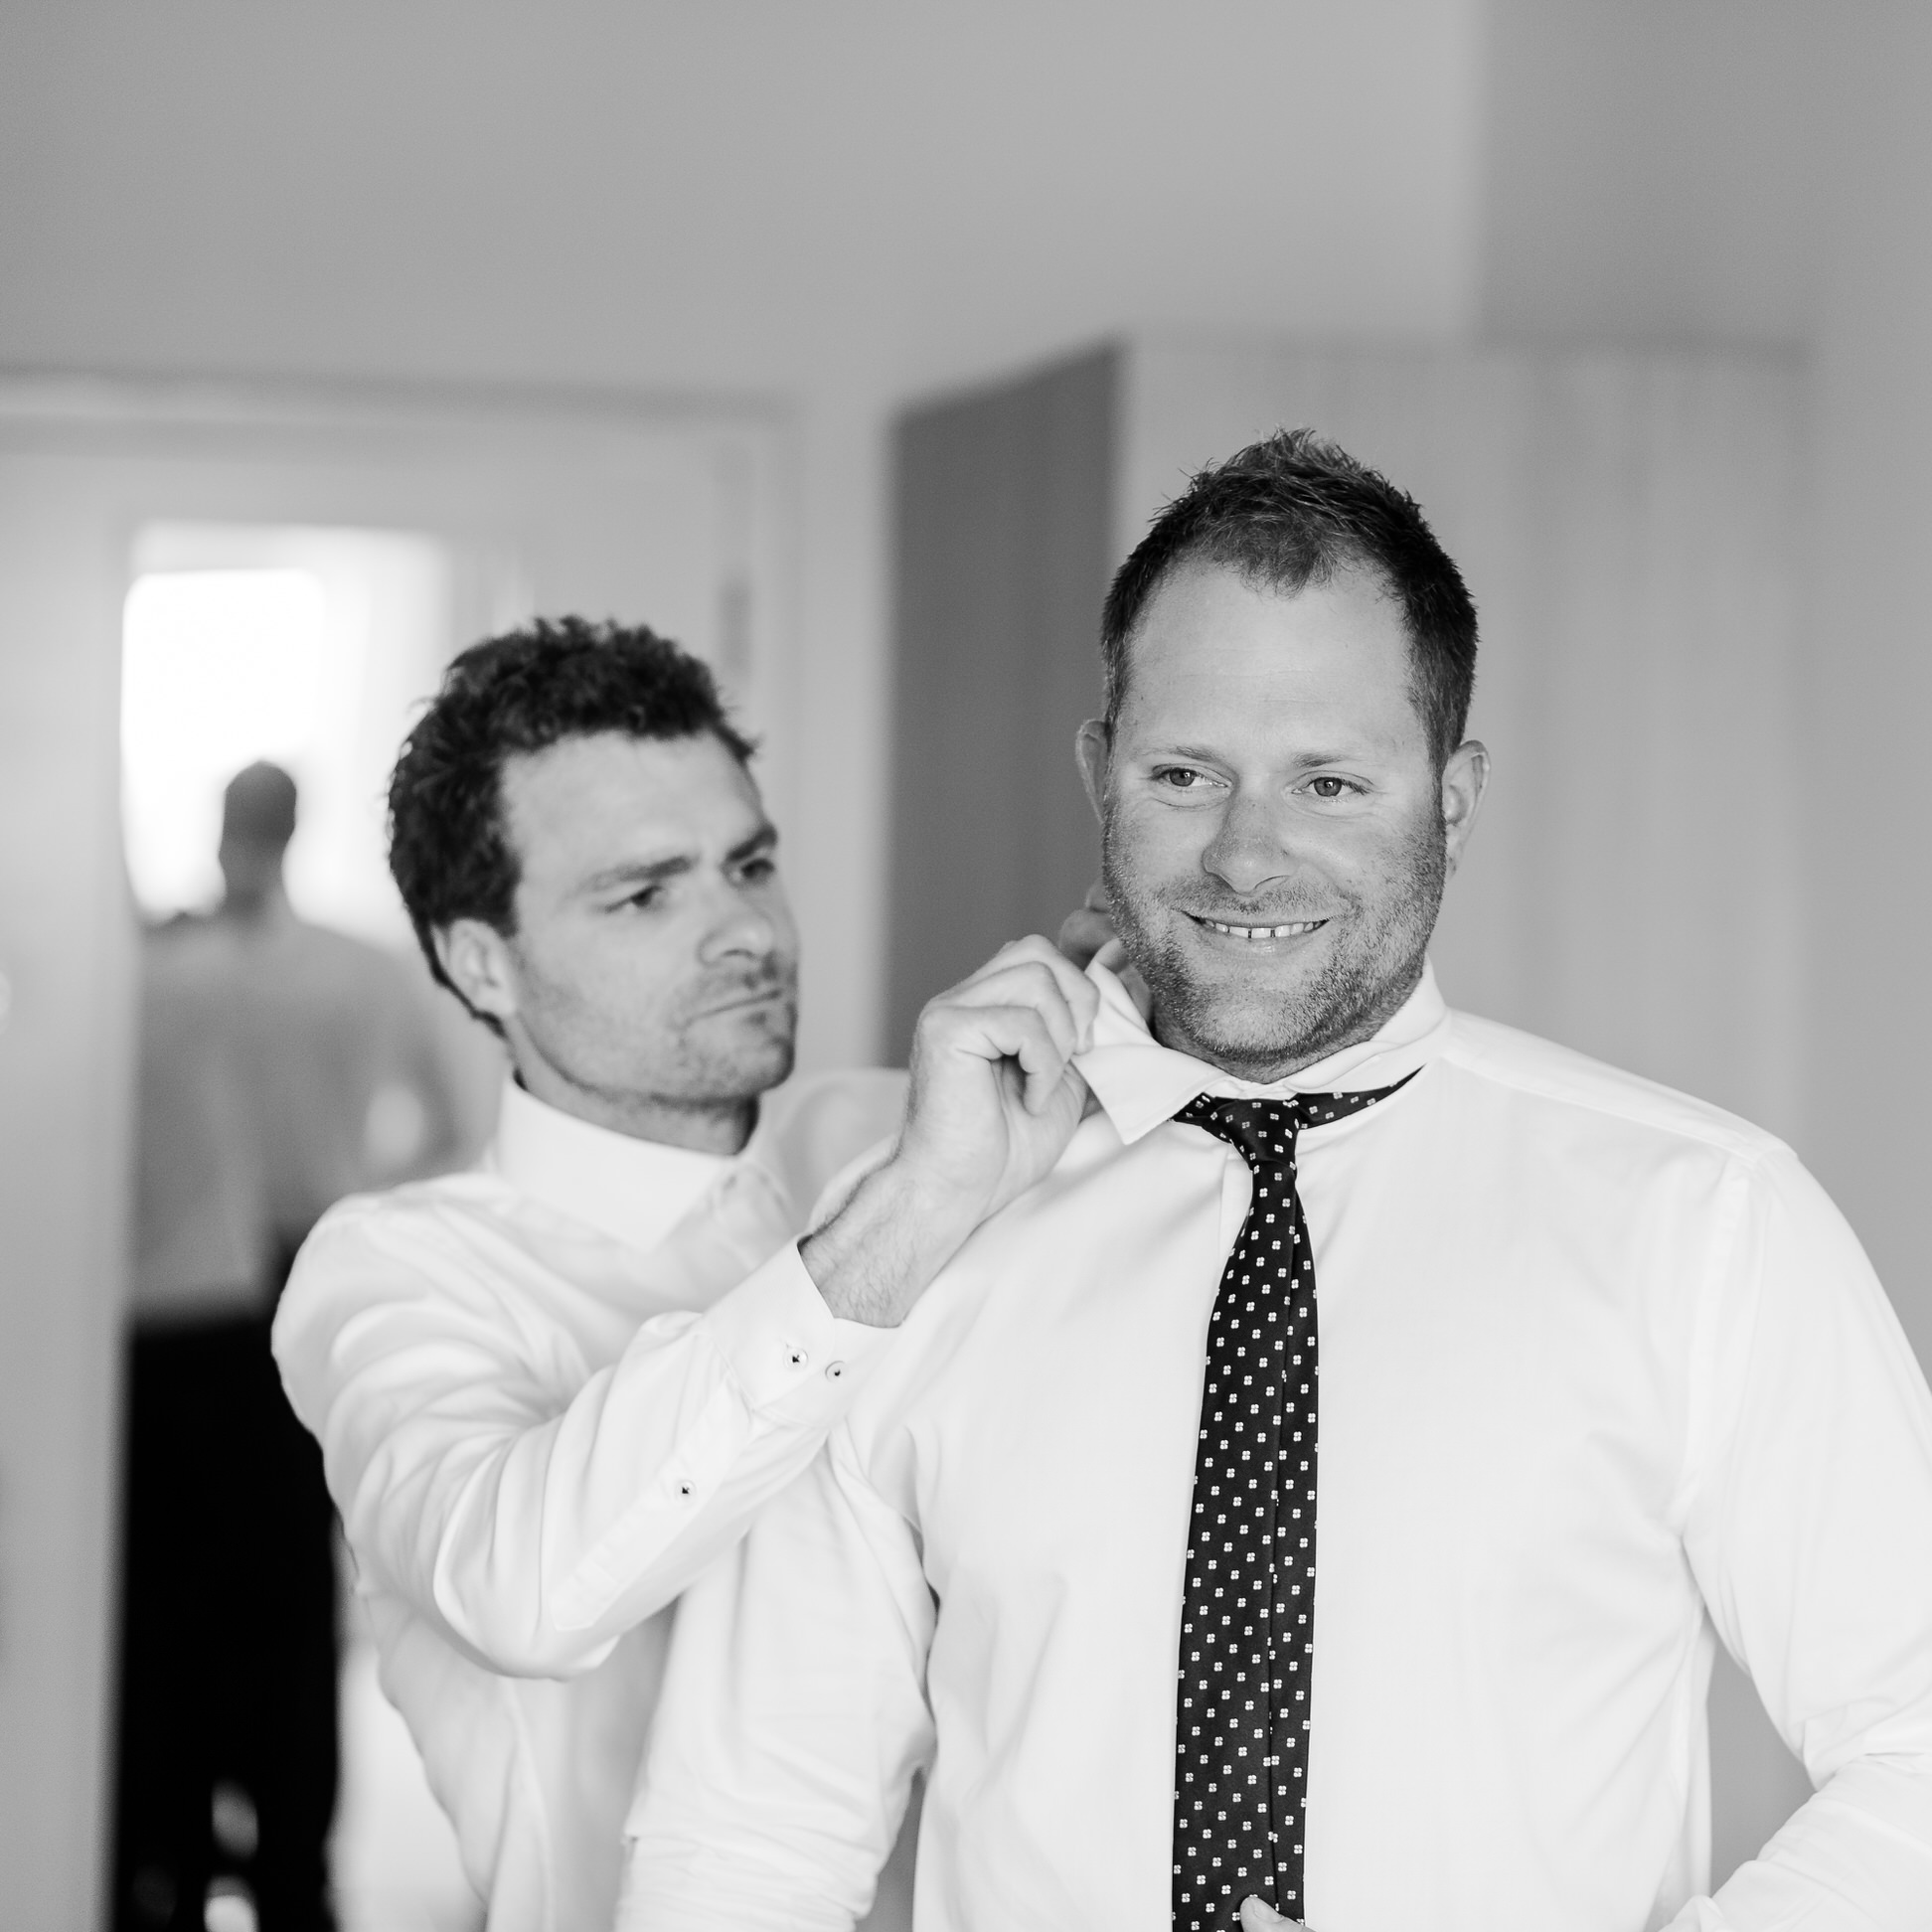 Justin_And_Jim_Photography_Byrchendale_Barn_Wedding07.JPG